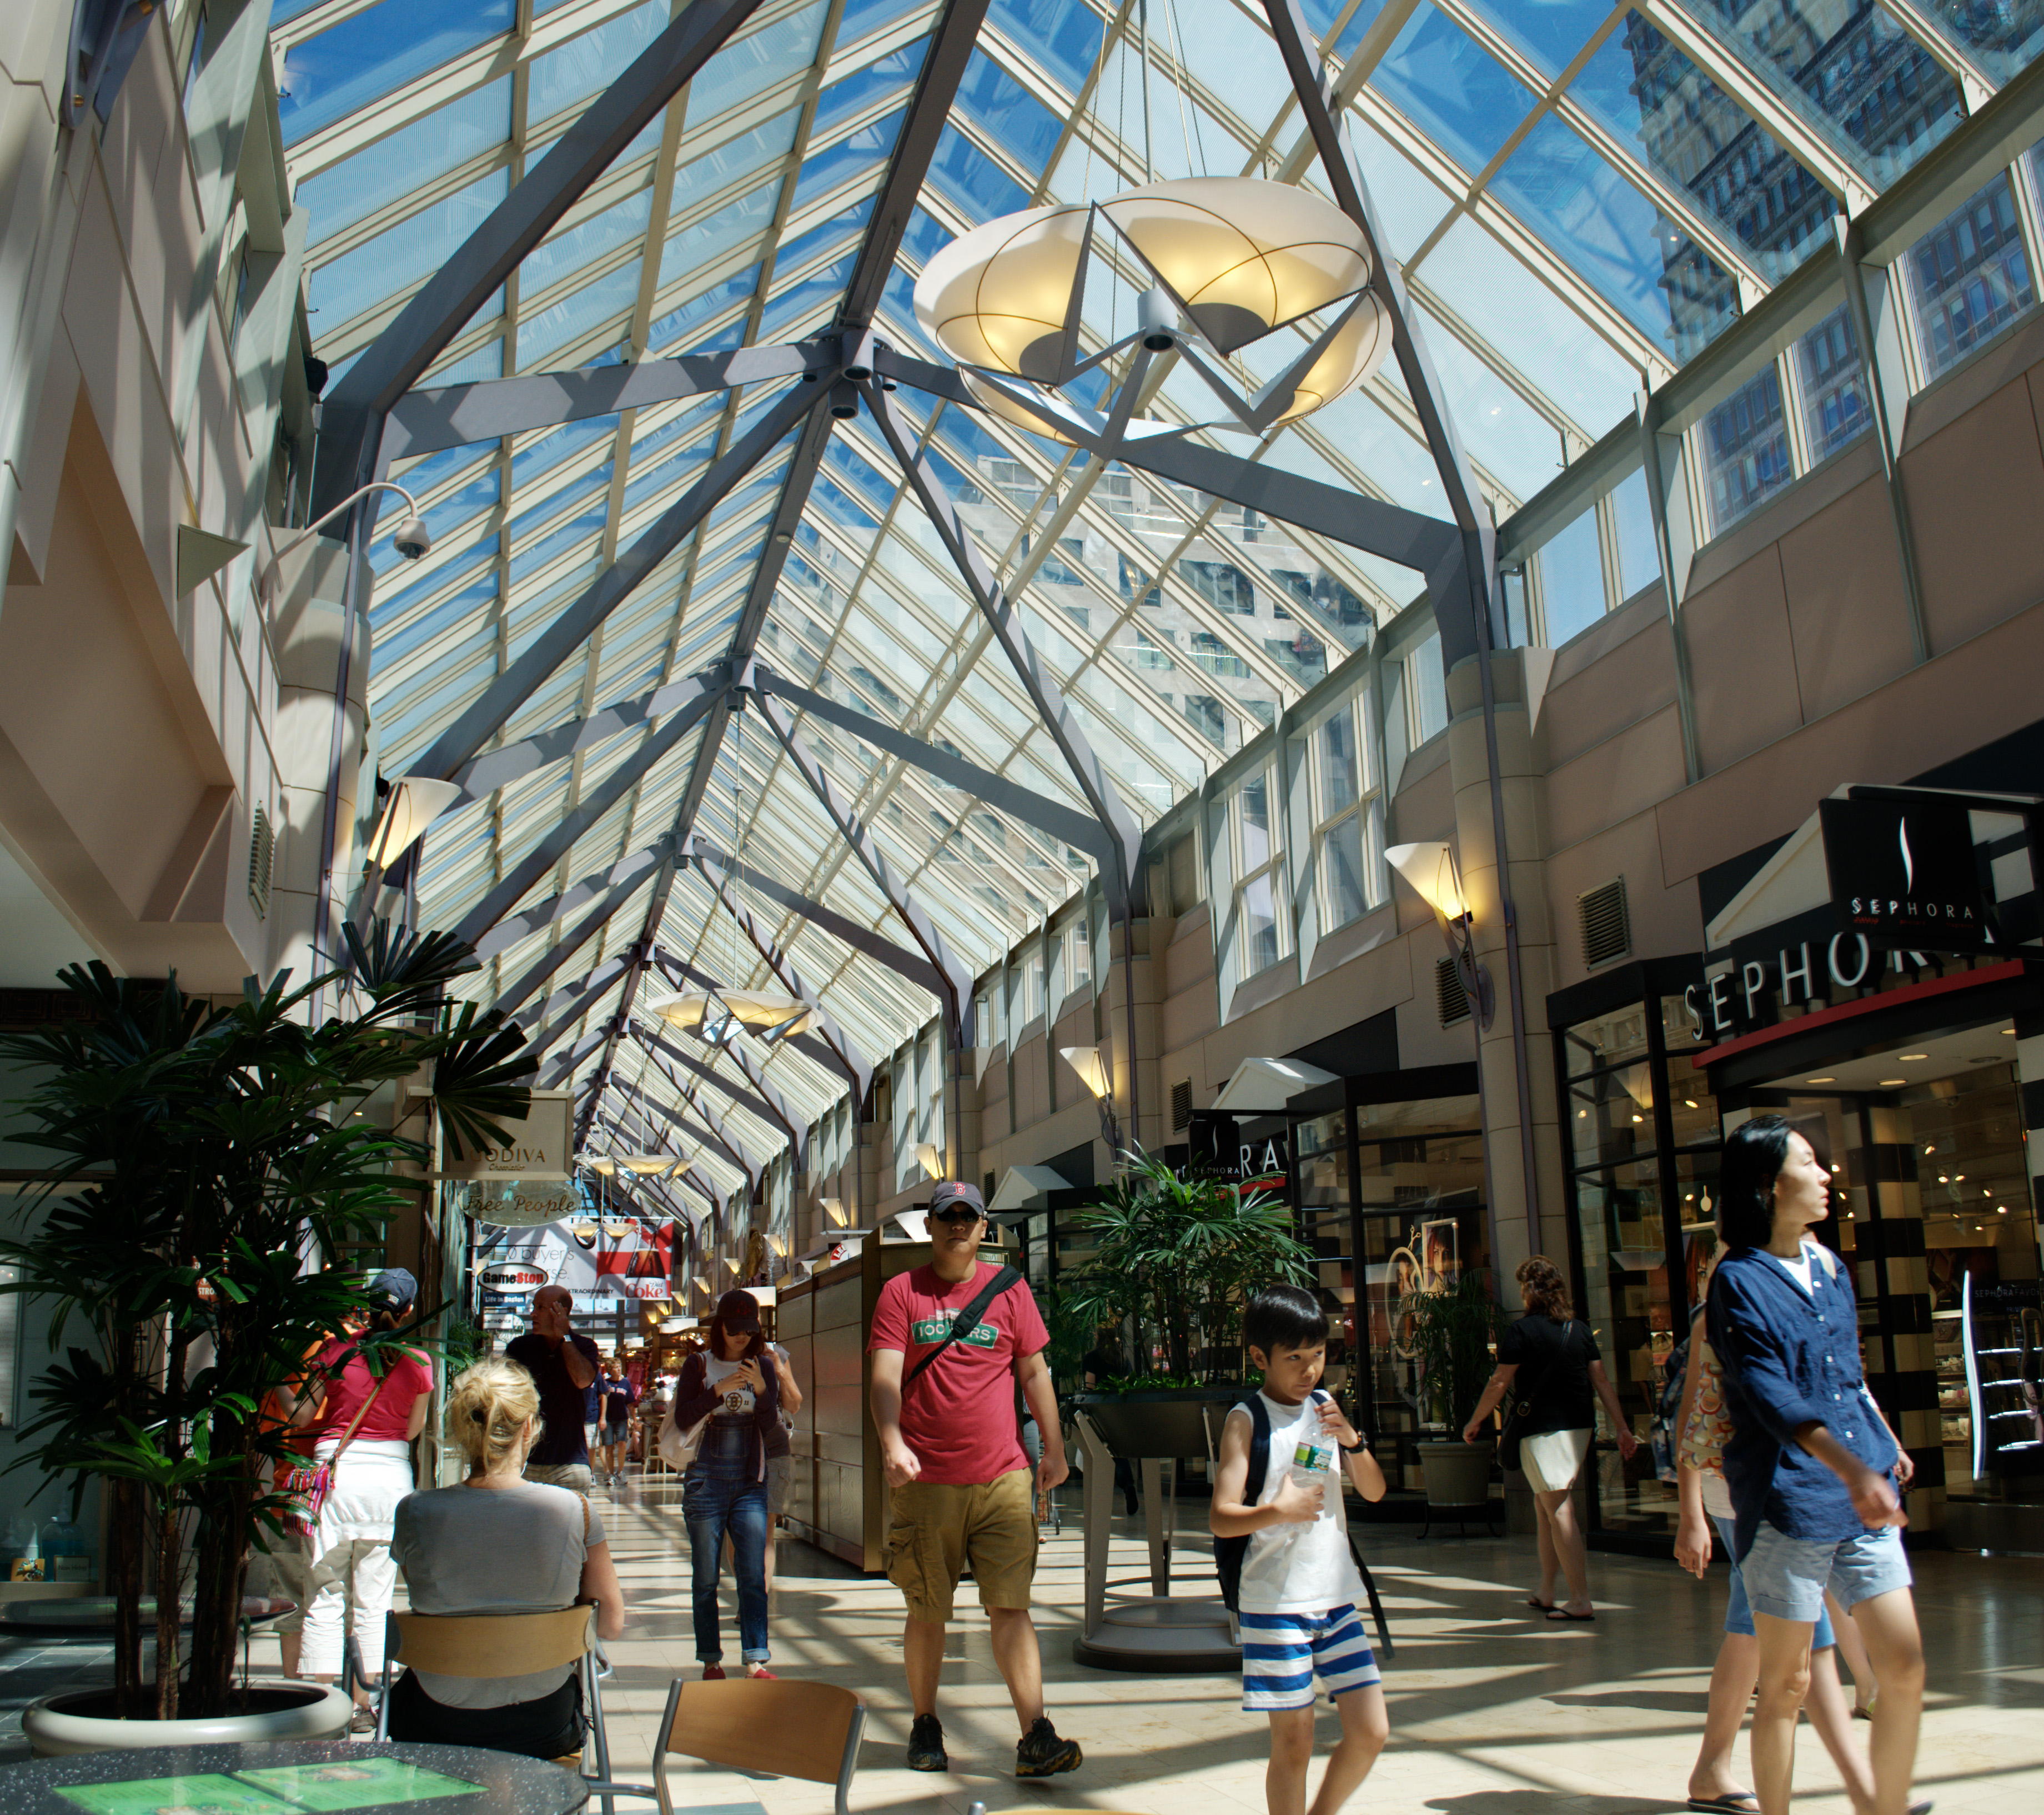 The Shops at Prudential Center - Wikipedia on riverside mall map, washington square mall map, milton mall map, phoenix mall map, washington street mall map, woodland mall map, chestnut hill mall map, broadway mall map, burlington mall map,